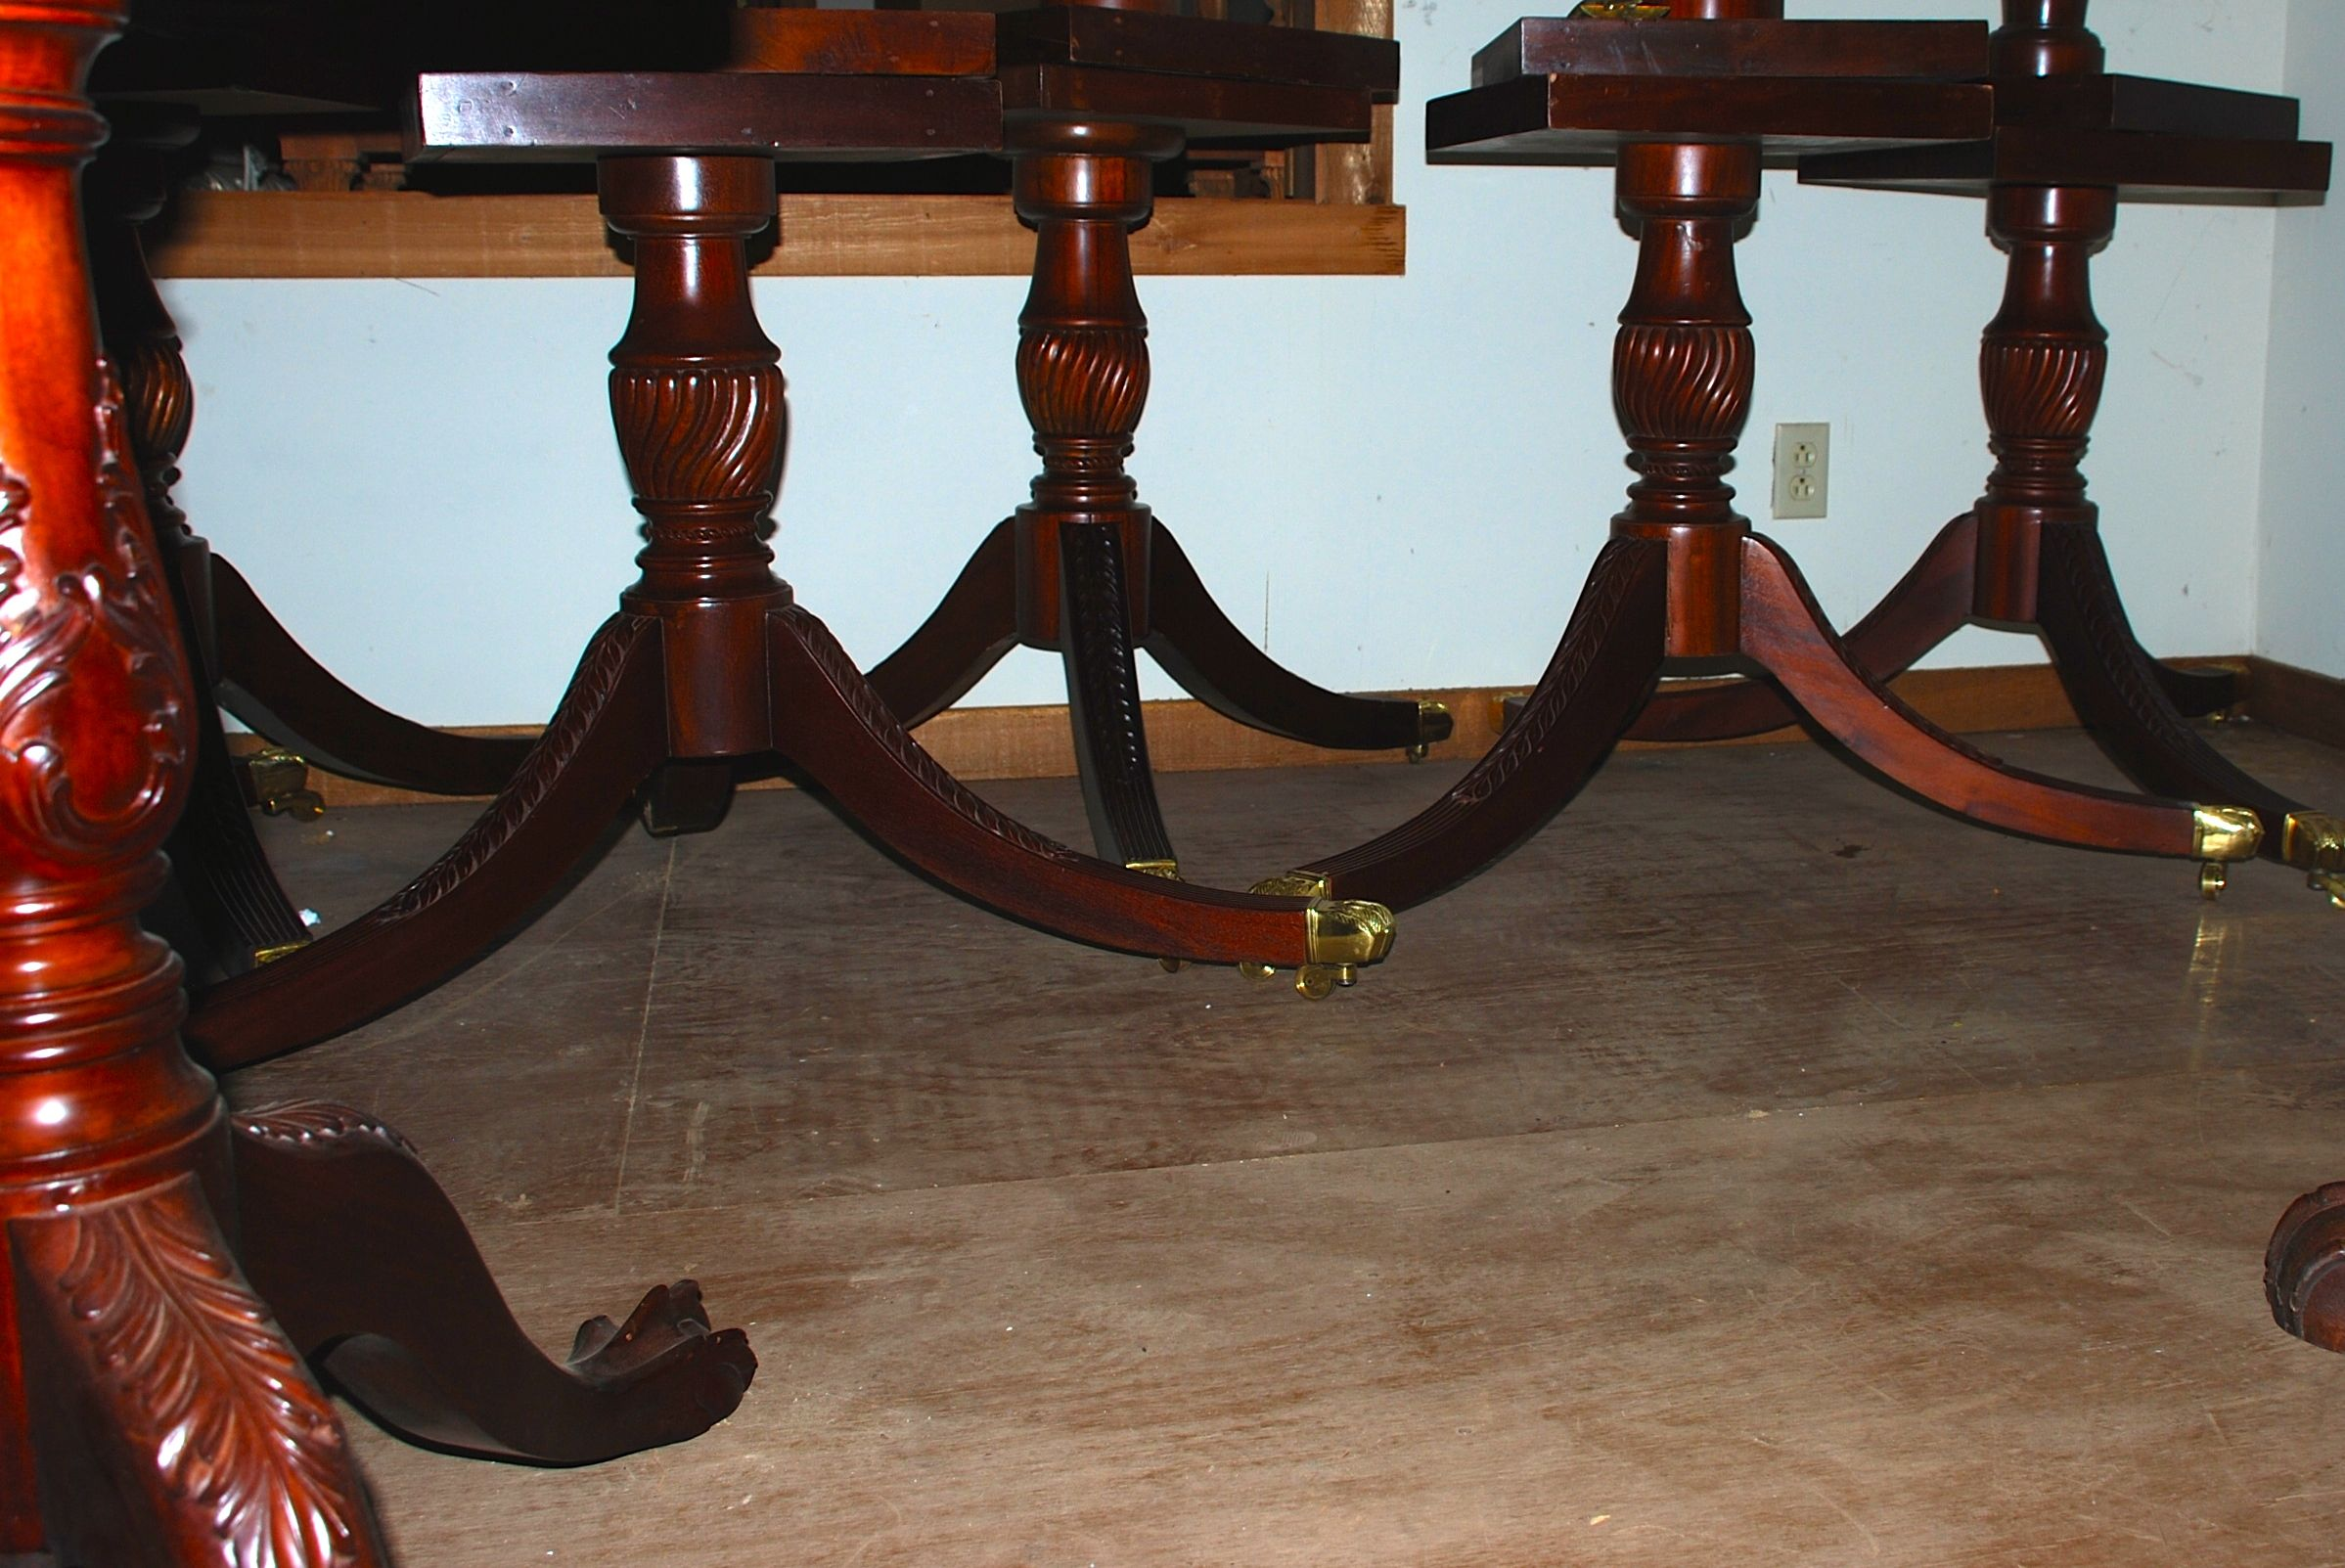 F Gany Table Pedestals Handcarved Bases For Furniture Makers At Charlies Antiques Dsc 0165 0169